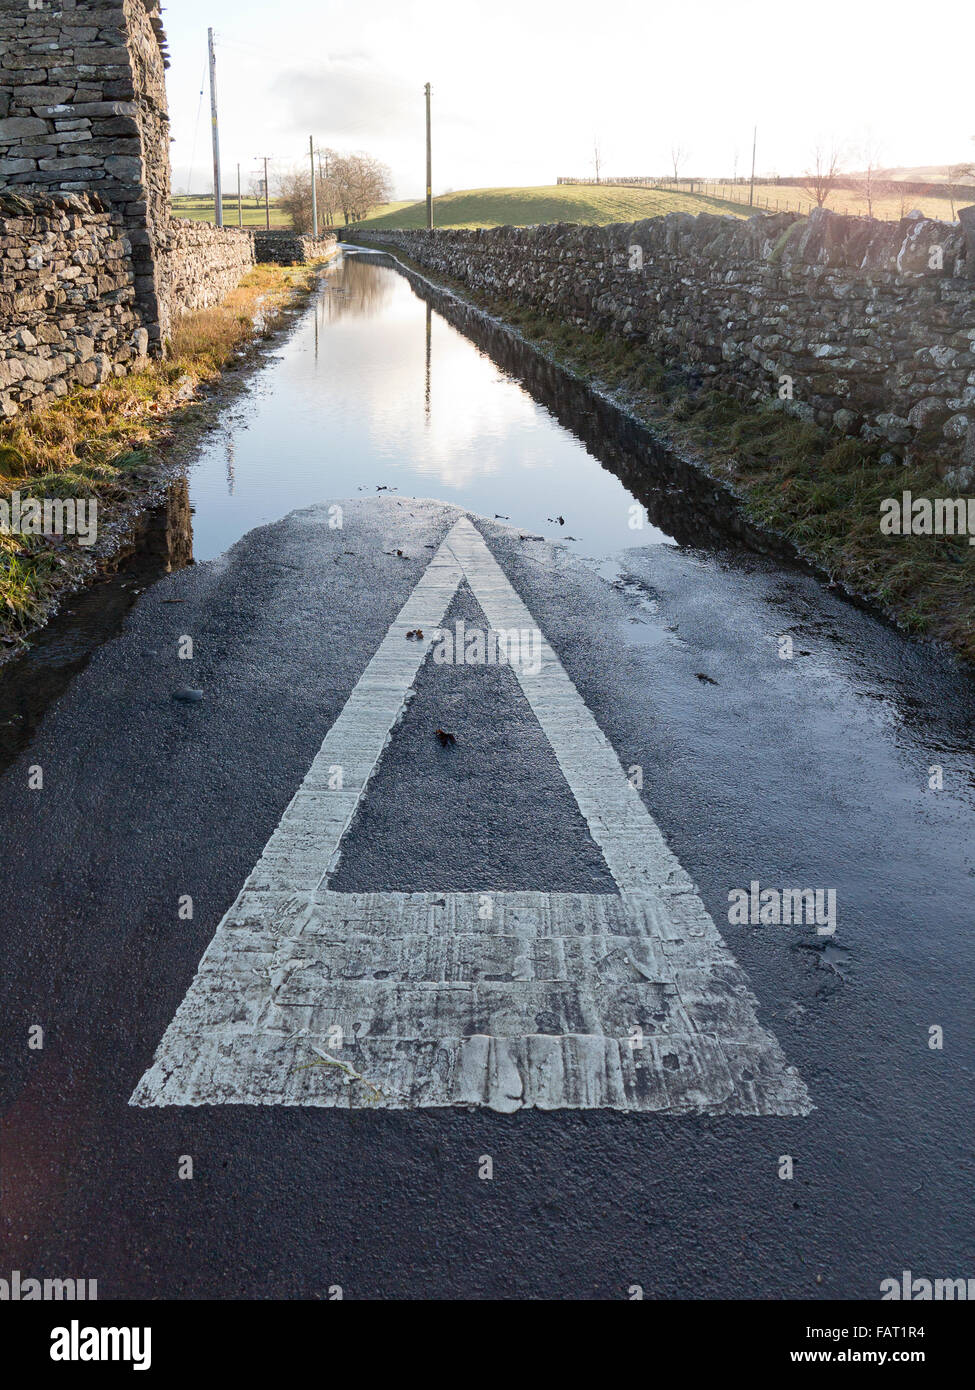 Looking down a partially flooded tarmac small road edged with drystone walls and showing directional triangle road - Stock Image